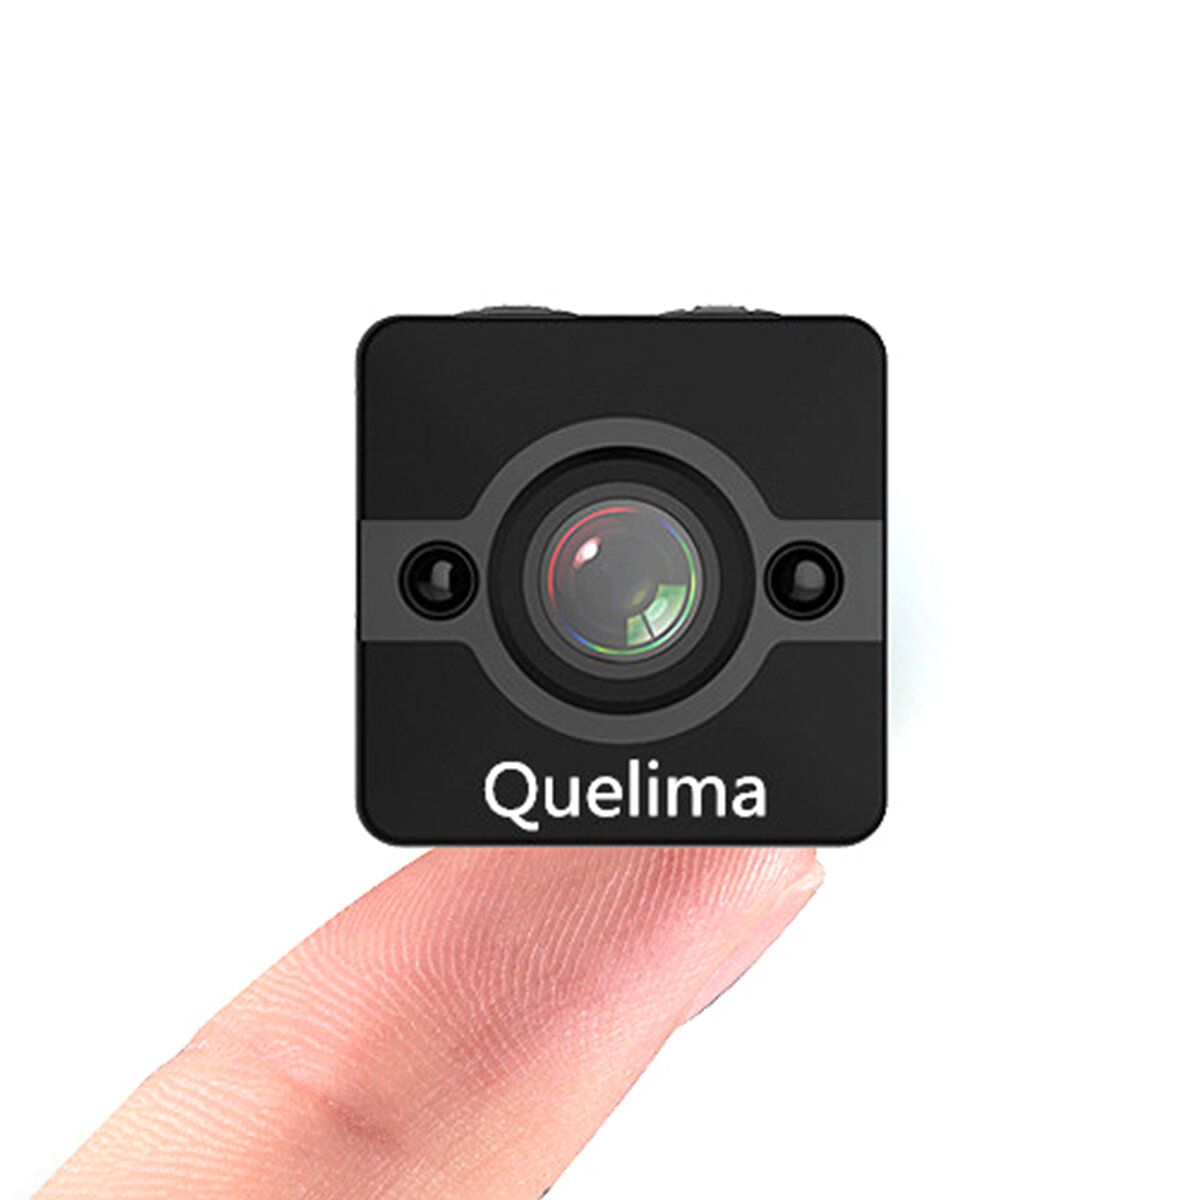 IKT US$16.99 Quelima SQ12 Mini 1080P FHD Car DVR Camera 155 Degree FOV Loop-cycle Recording Night Vision